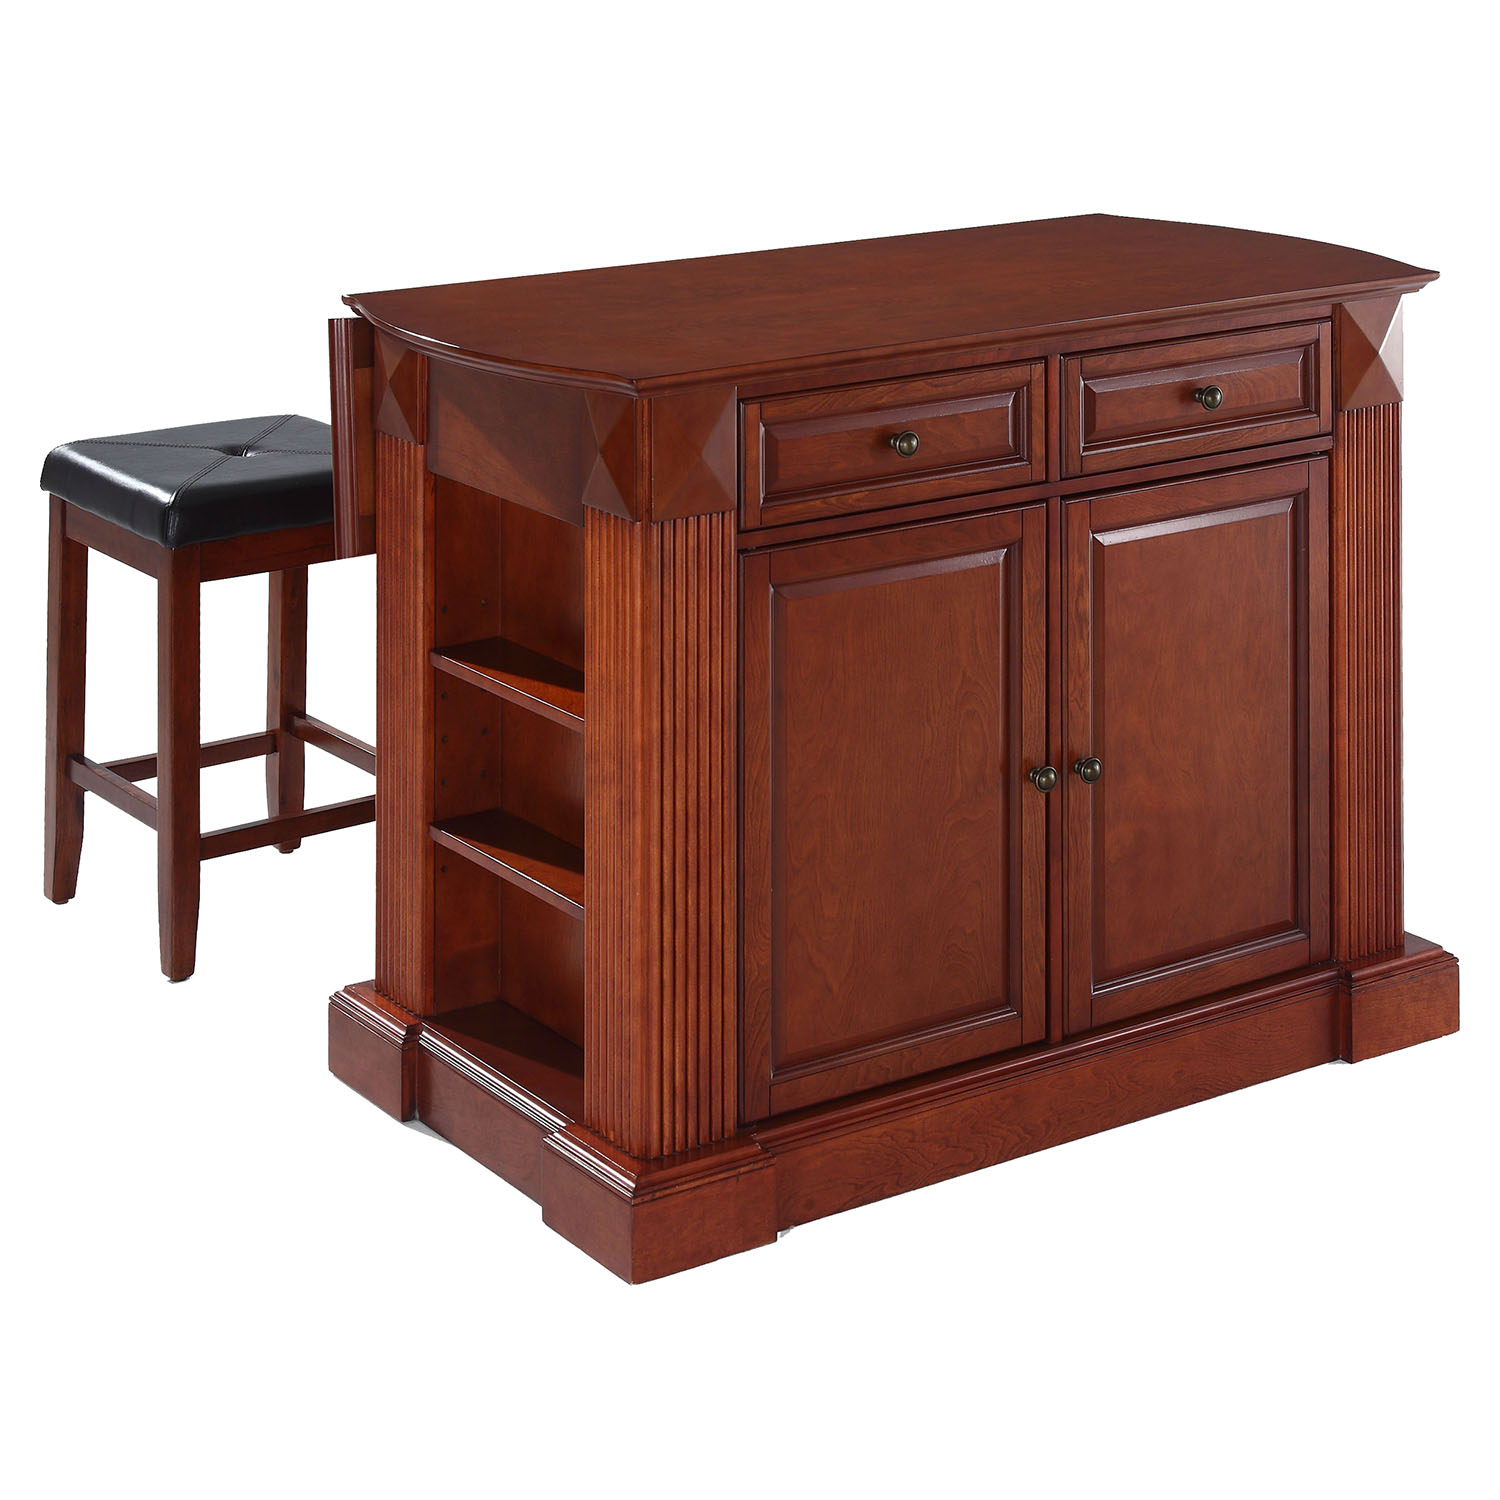 drop leaf kitchen island in cherry with 24 cherry square seat stools dcg stores. Black Bedroom Furniture Sets. Home Design Ideas